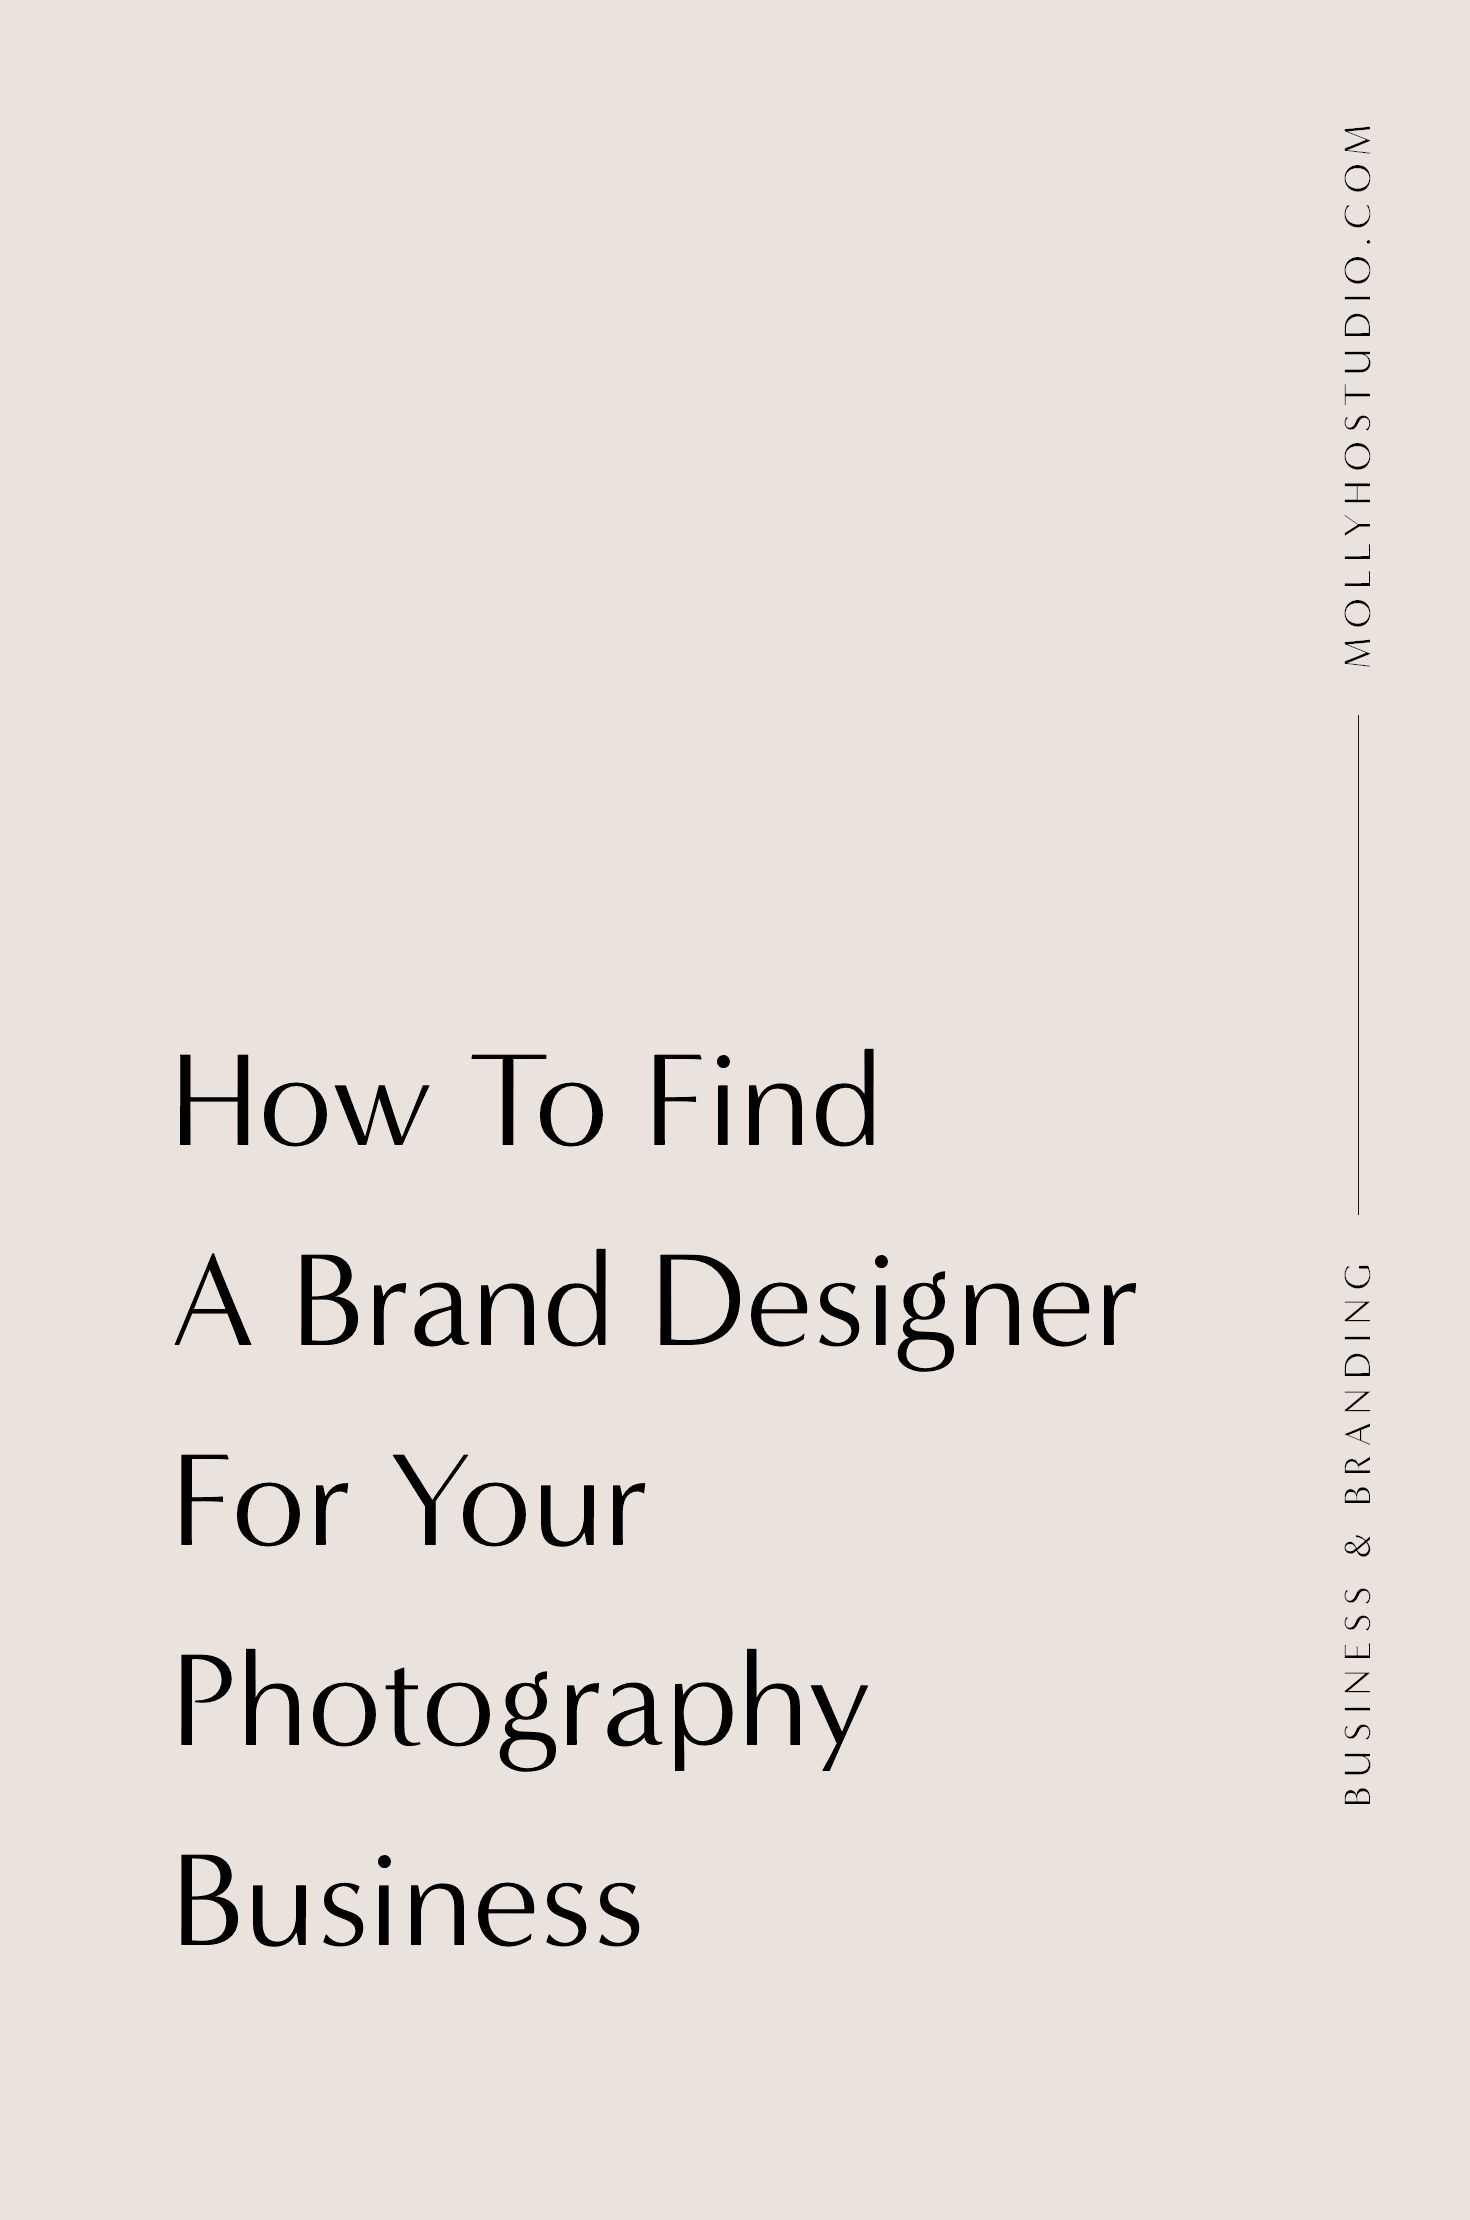 4 Tips On Finding The Perfect Brand Designer For Your Photography Business | How To Find A Brand and Graphic Designer for Your Business | Branding and Marketing Tips for Photographers and Small Business Owners | Growing Your Photography Brand and Business | Personal Branding for Creative Female Entrepreneurs | Digital Marketing and Social Media | Finding Your Ideal Client Avatar and Target Market | Creative Entrepreneurship | Molly Ho Studio